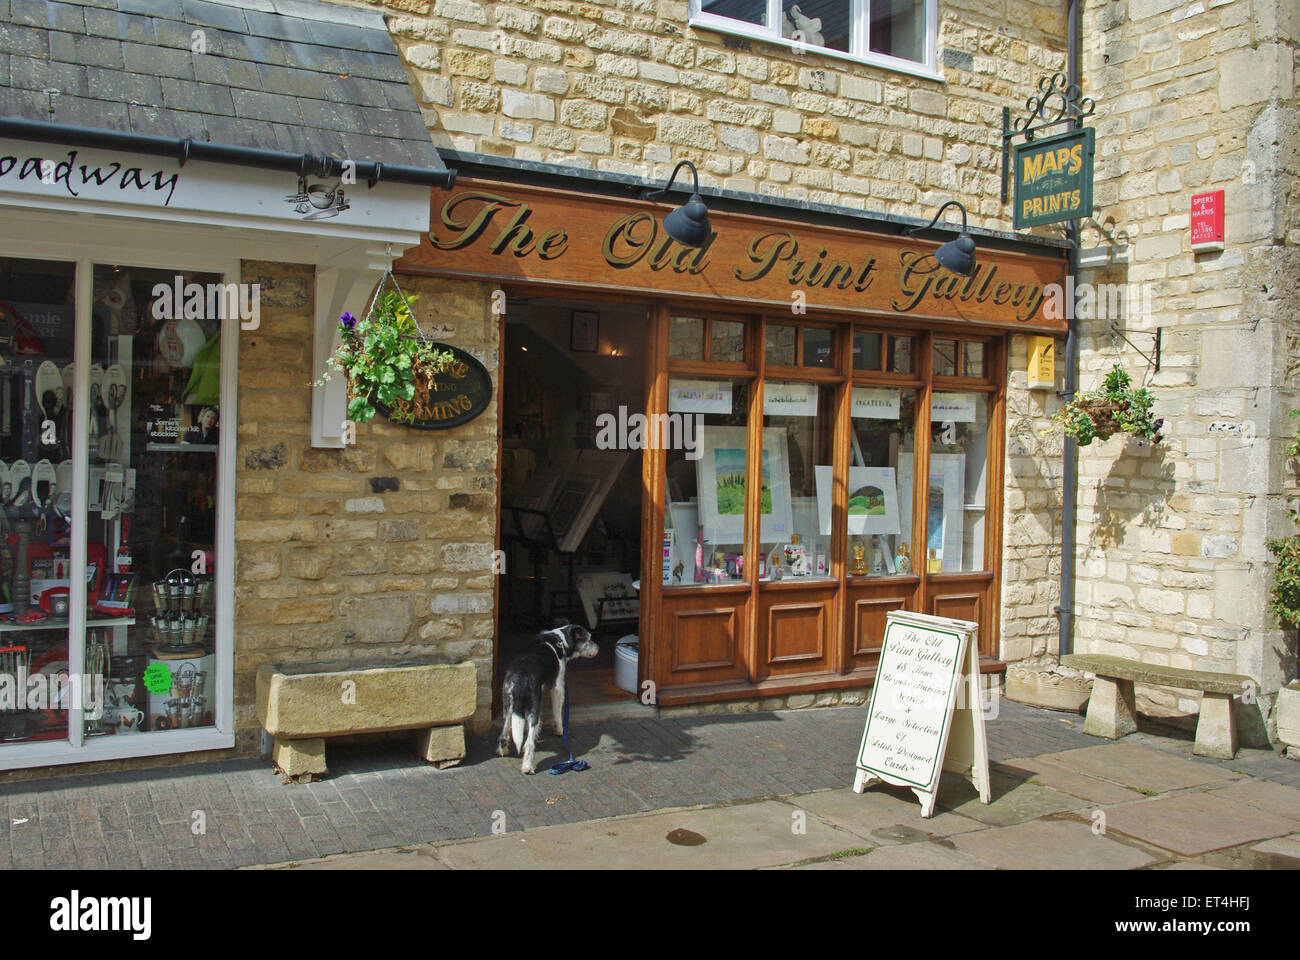 The Old Print Gallery, a shop in a precinct off the High Street in the Cotswolds village of Broadway - Stock Image